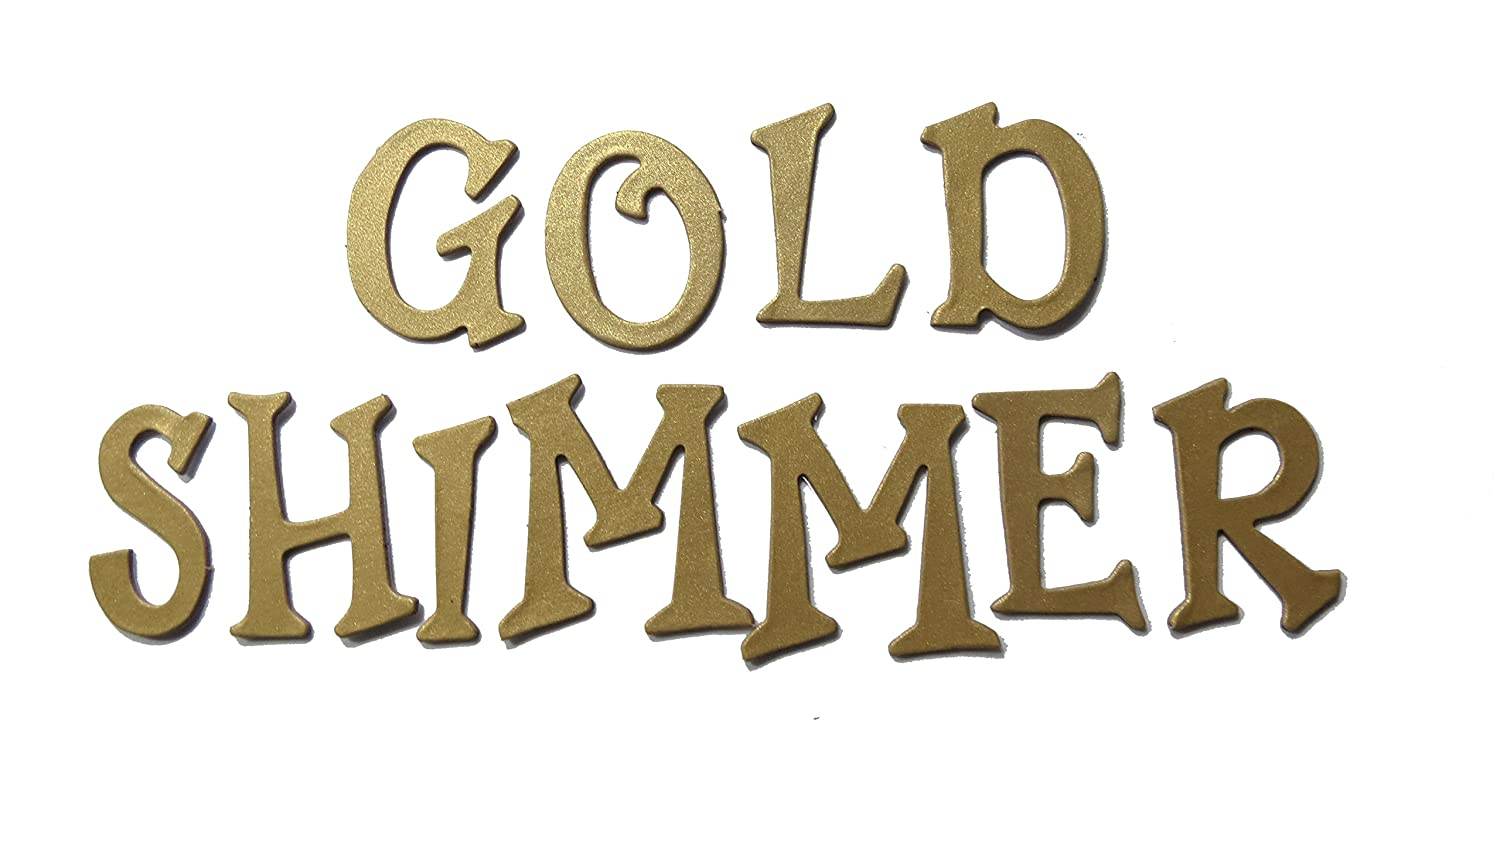 Shimmer Chipboard Handcut 1.5 Alphabat Letters 60 Pieces Stickers Fun Serif Fnnt Uppercase Gold